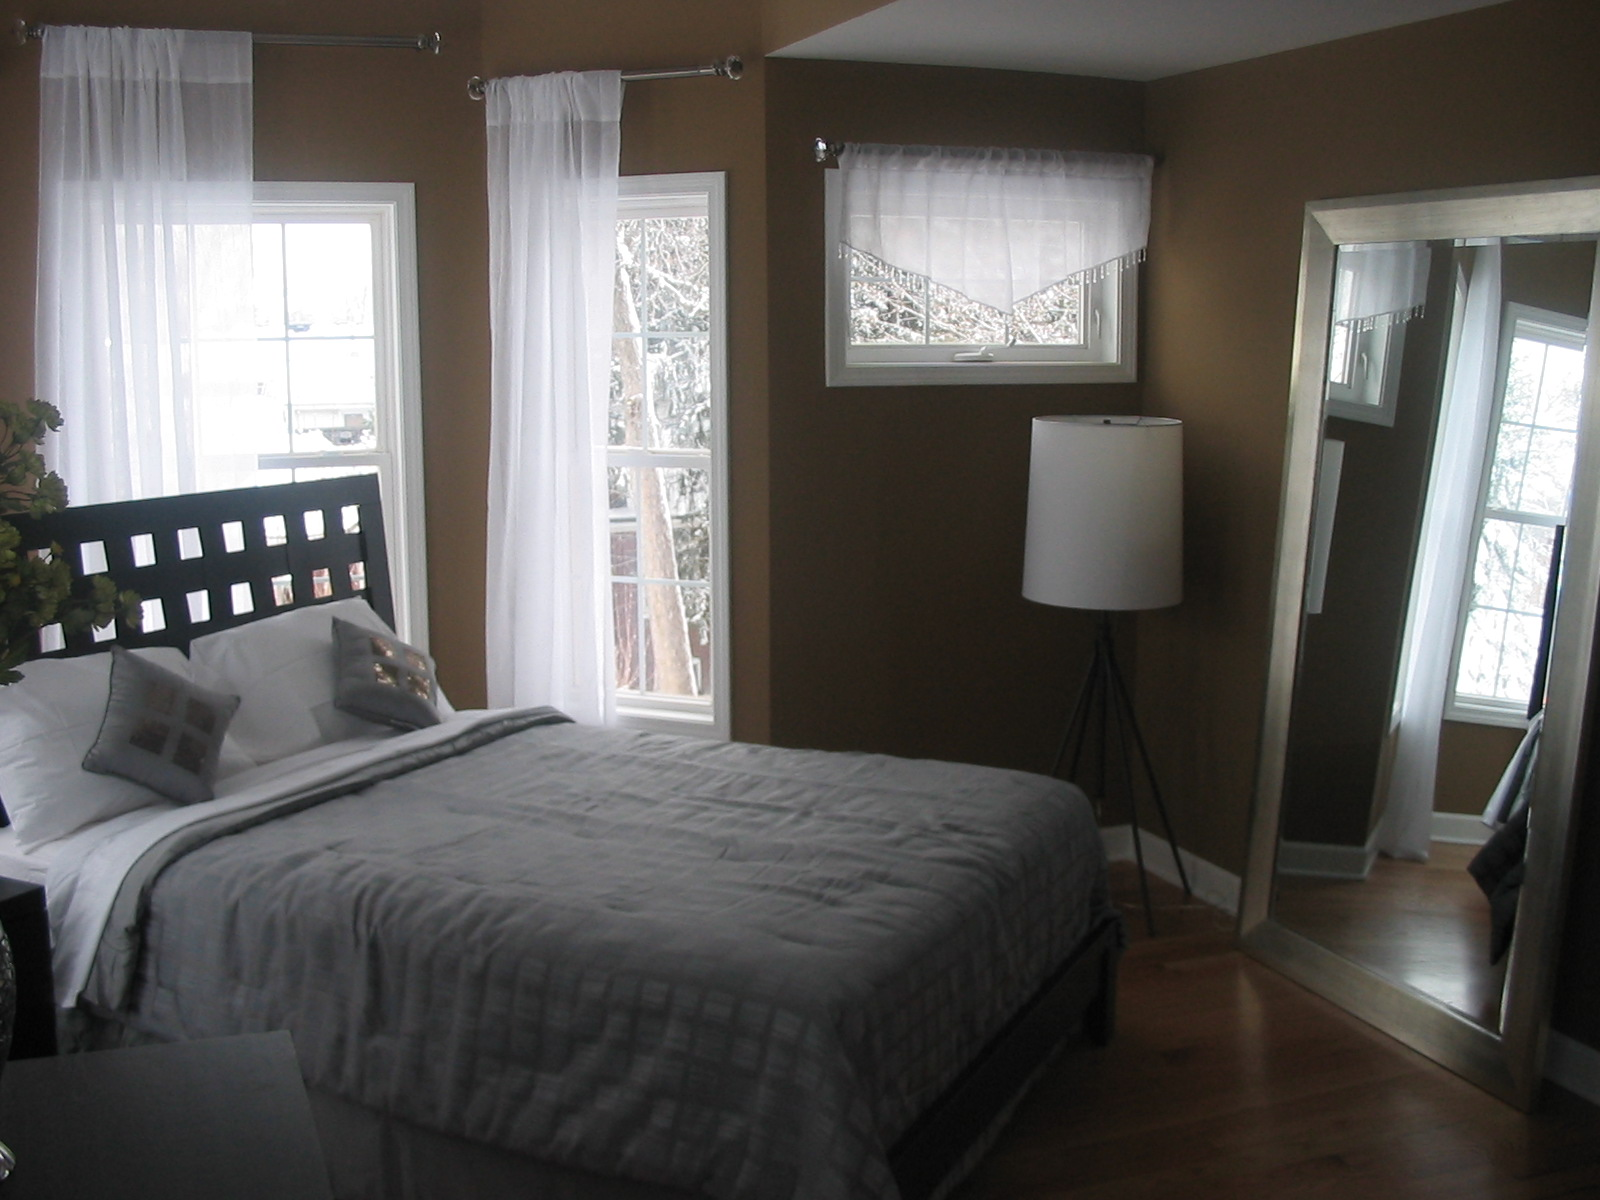 Ideas For Decorating Small Bedroom  The Interior Designs